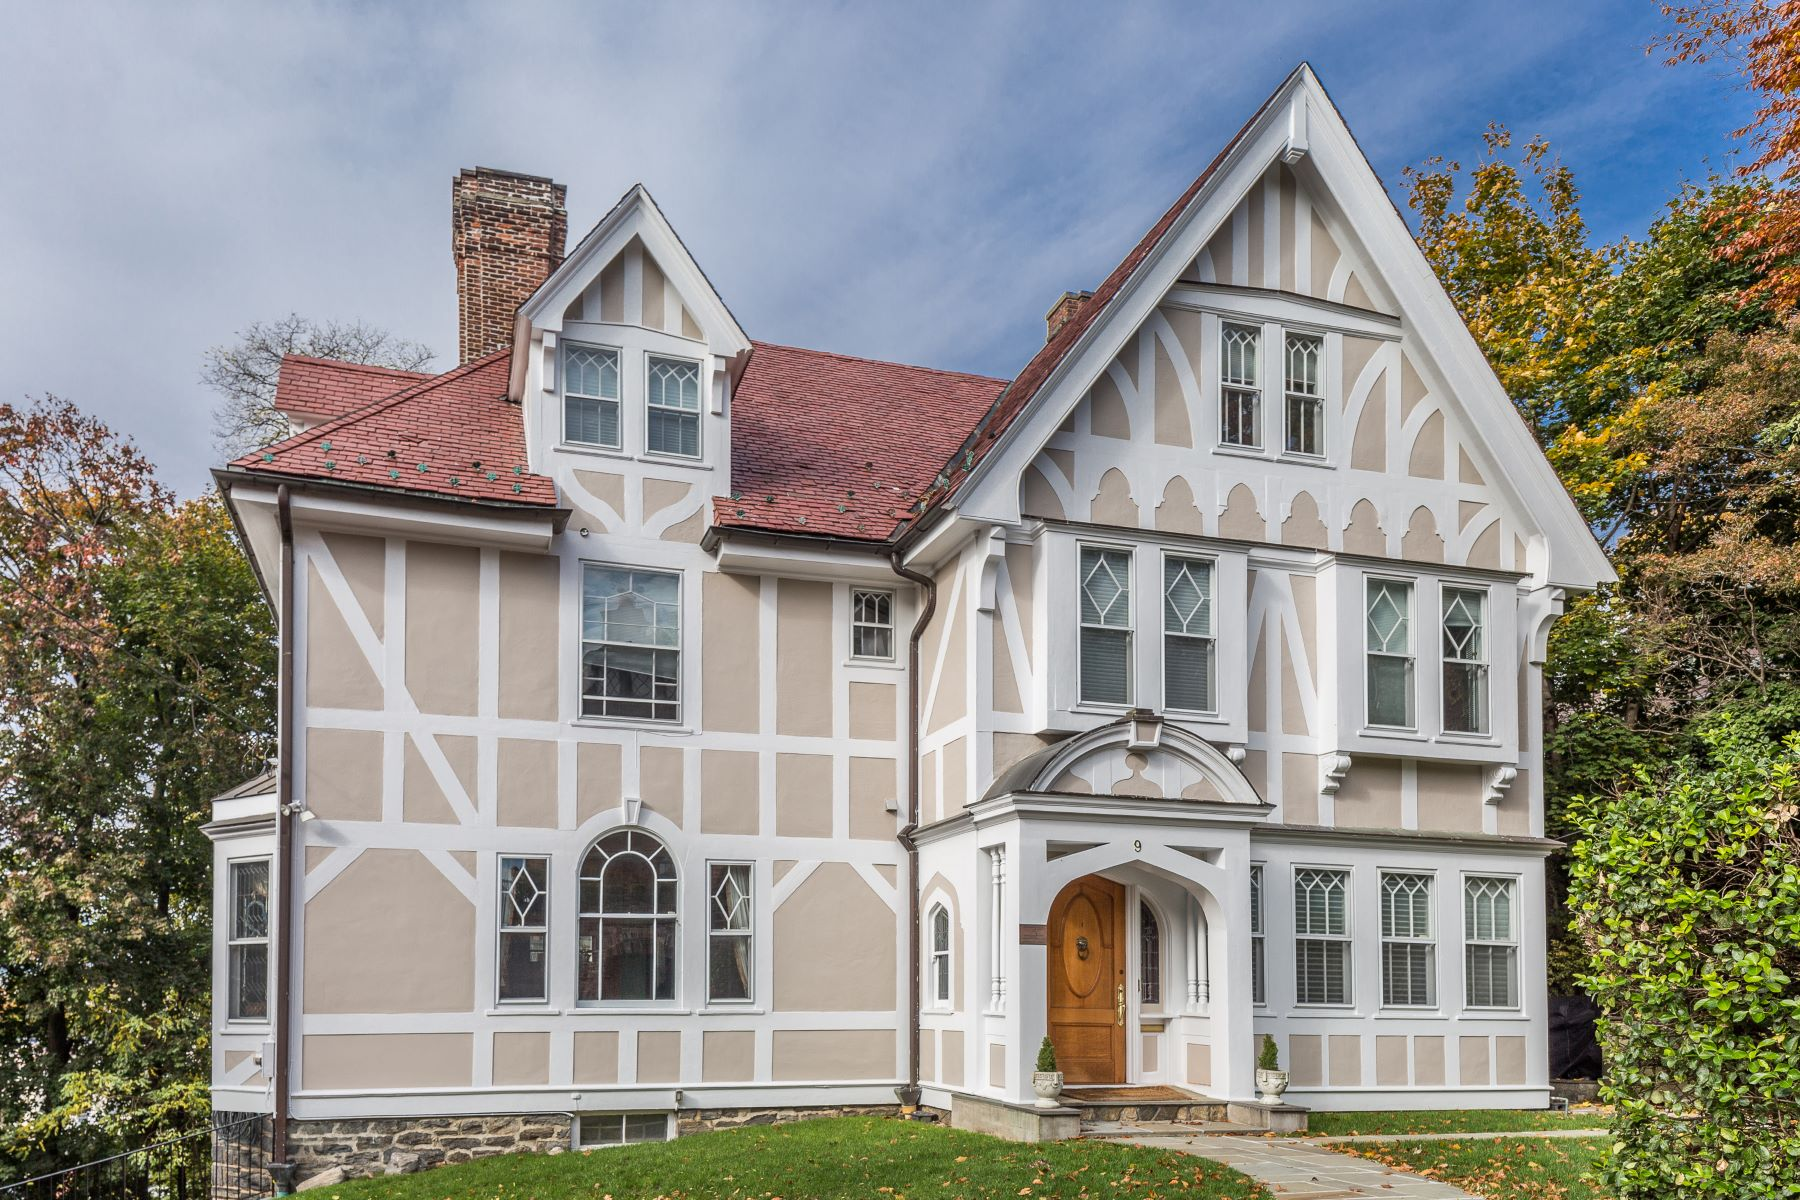 Single Family Home for Sale at Premier Hilltop Location 9 Lookout Avenue, Bronxville, New York, 10708 United States